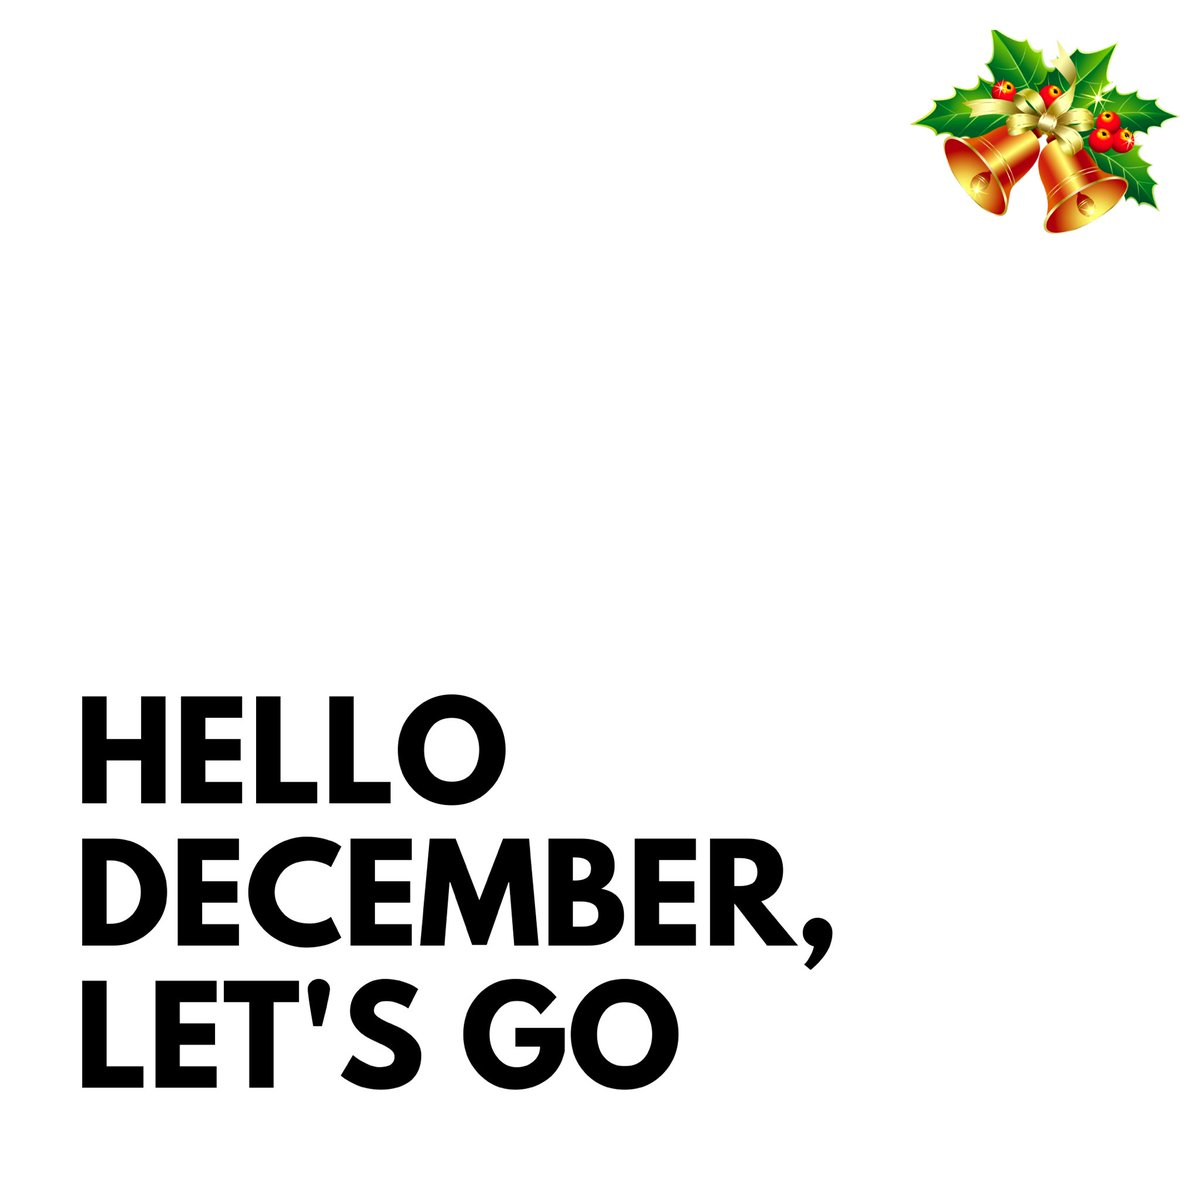 #HelloDecember 🎄It's the final countdown to the end of this crazy year! 🤦🏻♀️ So let's make the most of it - LET'S GO!!! 💕 #reginalovesit #December2020 #December1st #tuesdaymotivations #tuesdayvibe #Tuesday